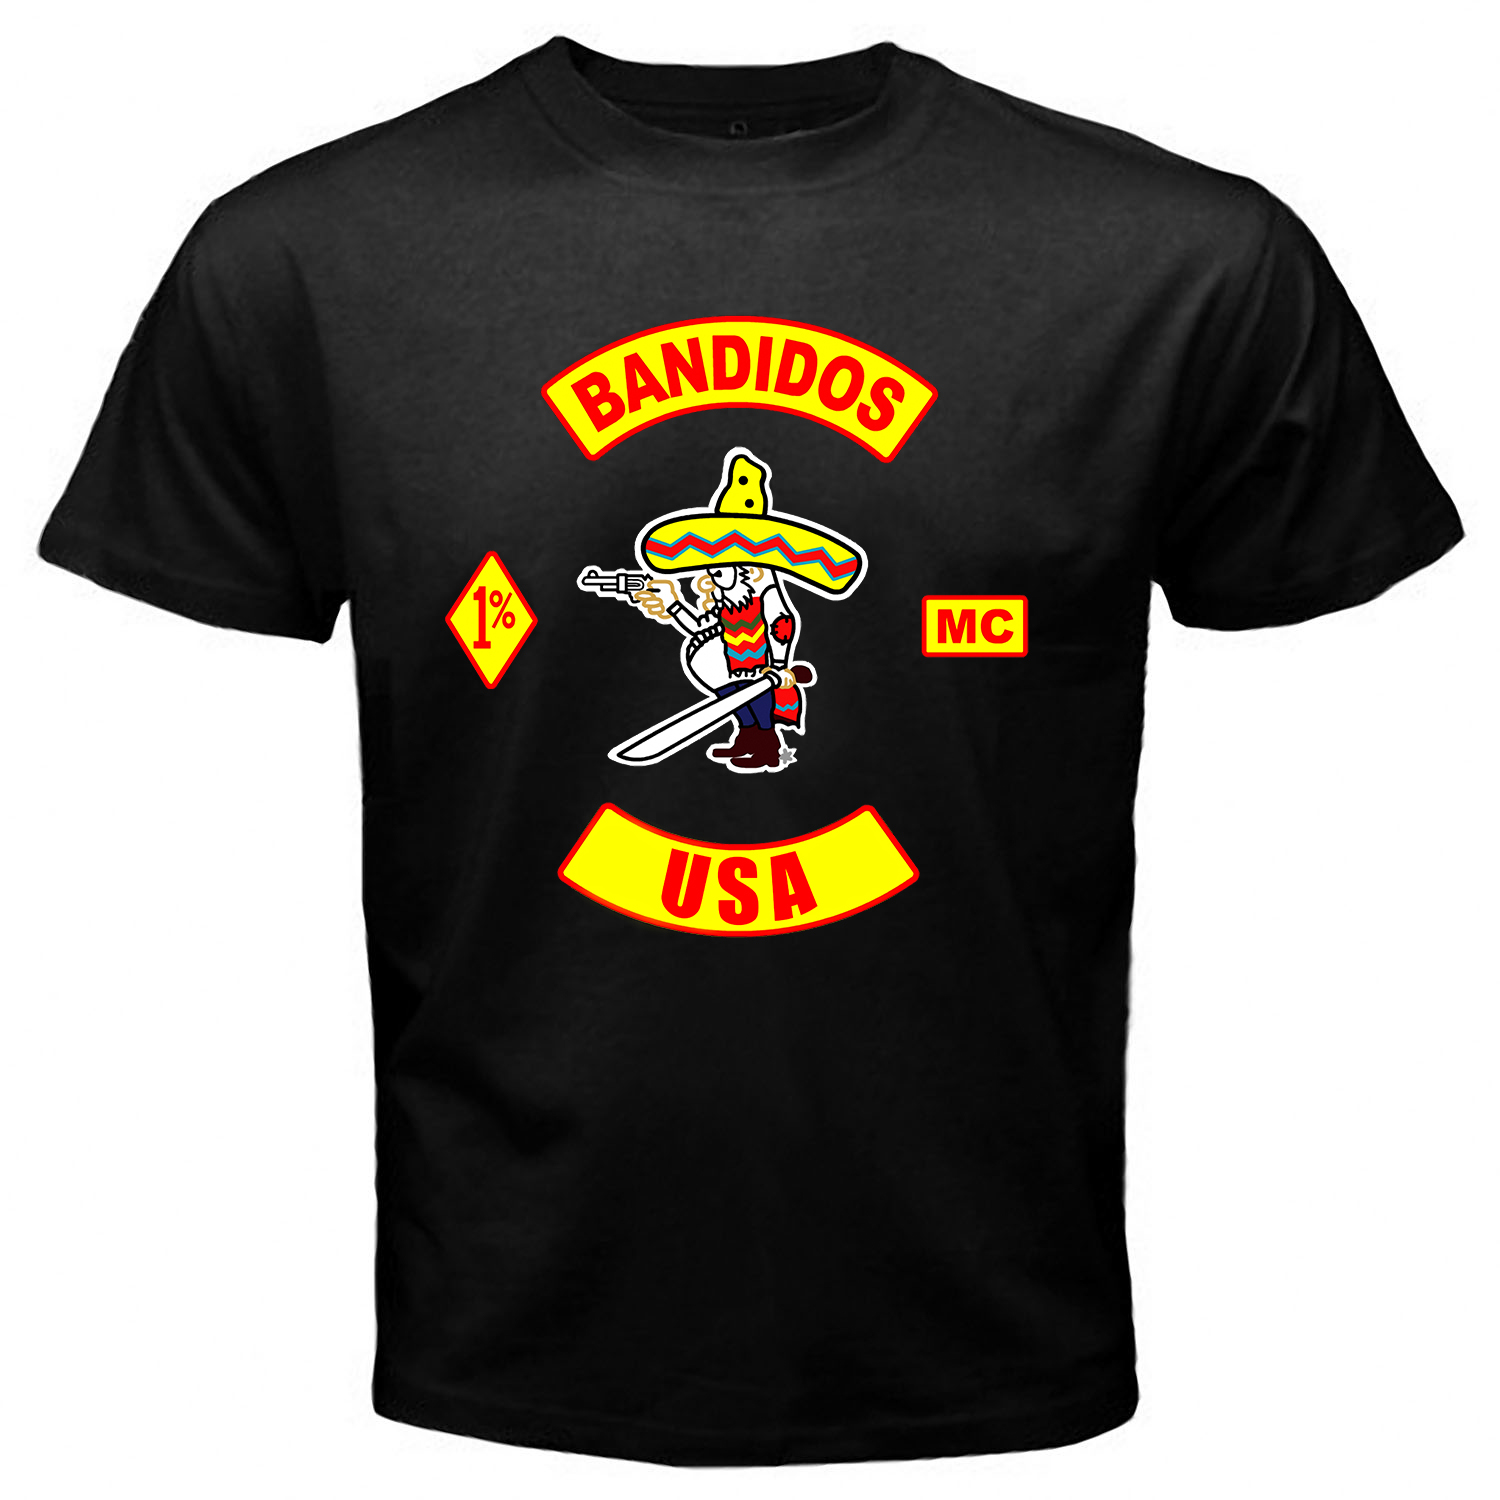 Bandidos USA Black T-shirt One Side